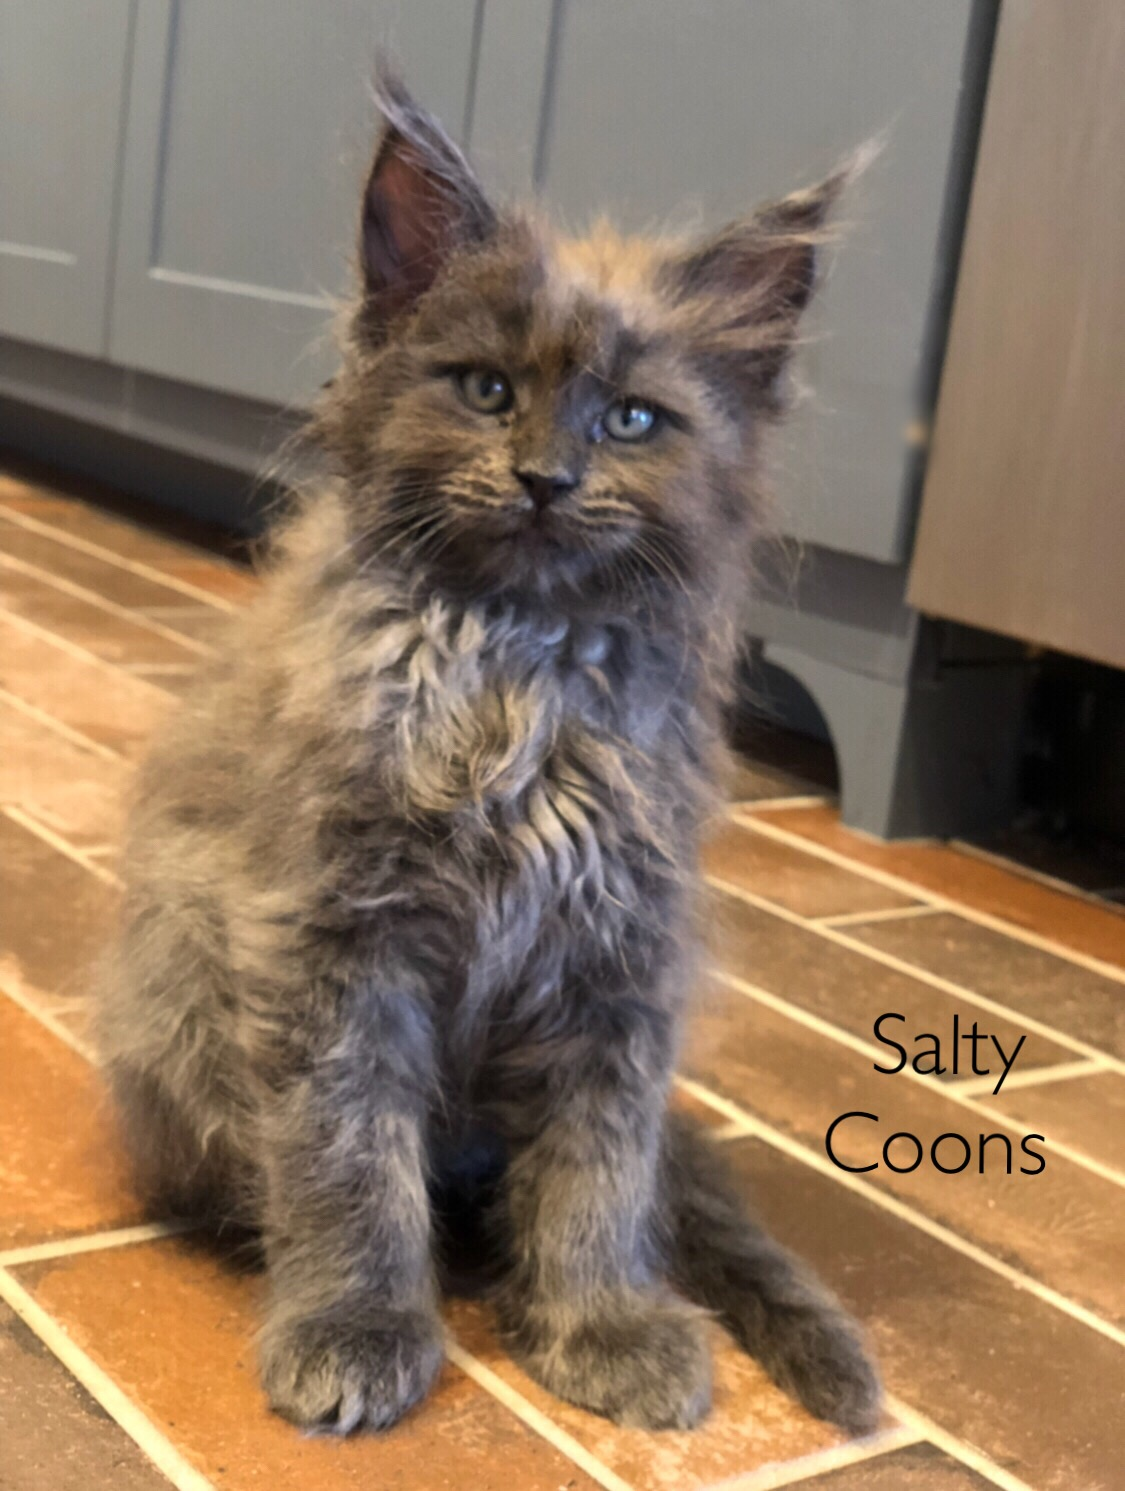 Maine Coon Kittens For Sale Tn : maine, kittens, Maine, Kittens, Petfinder